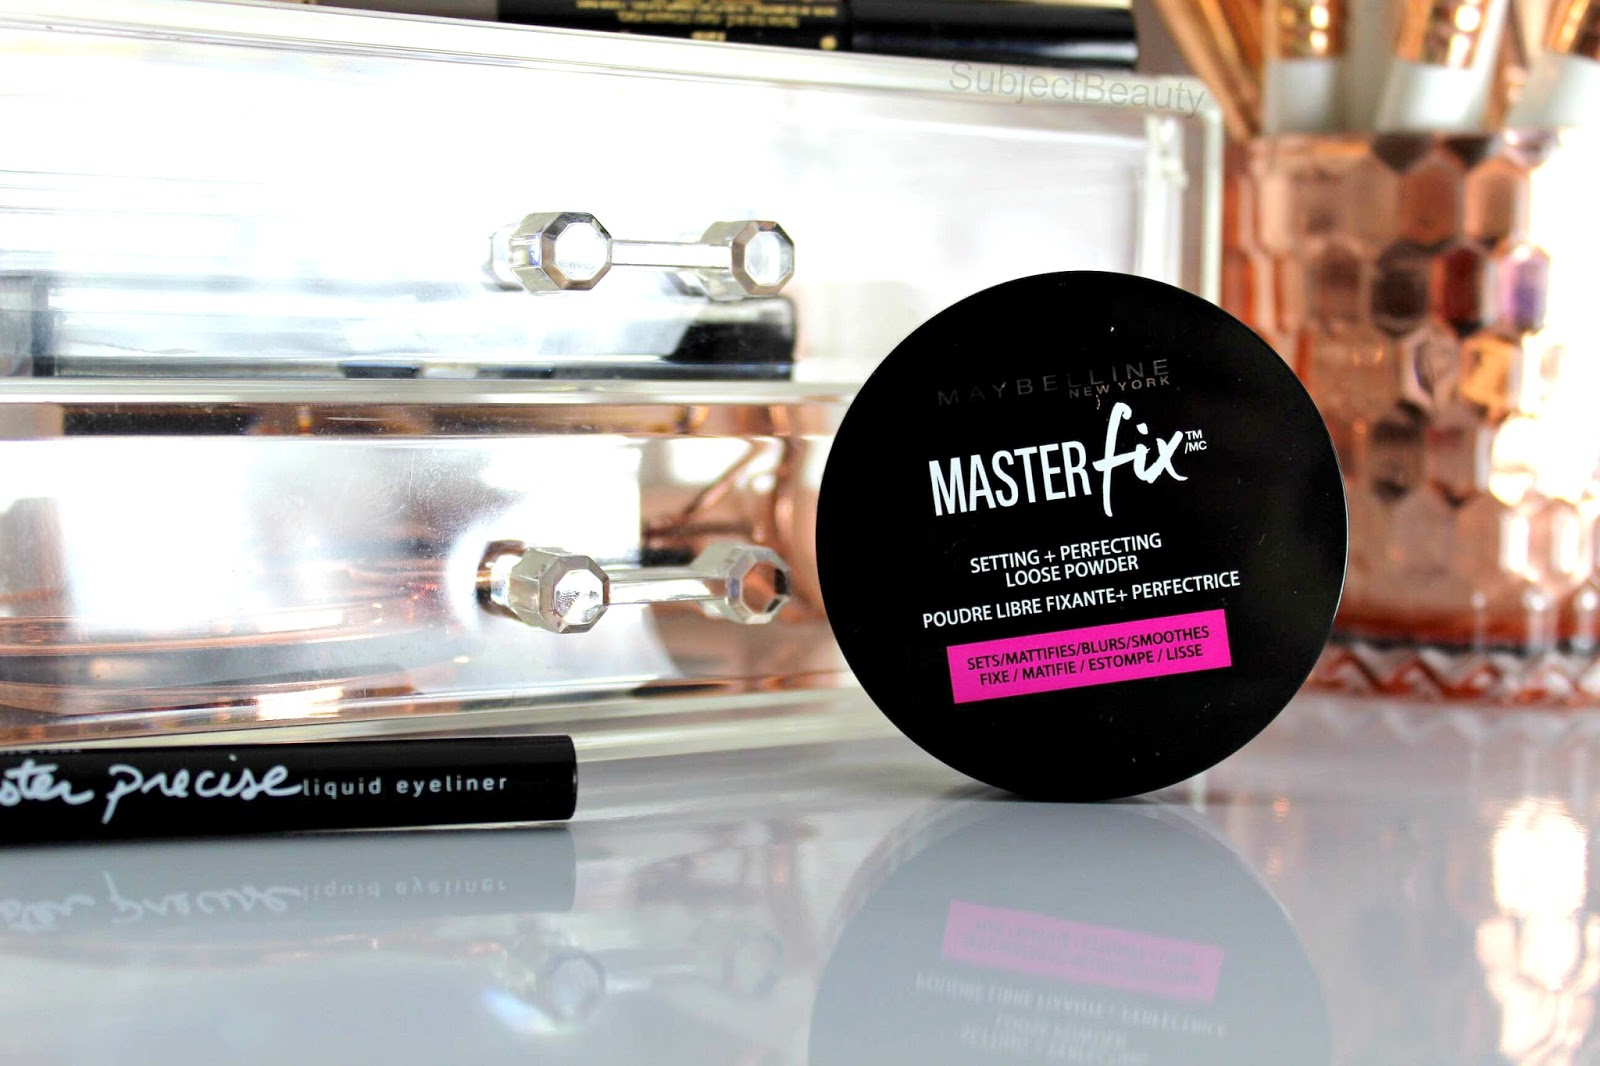 Master Fixer Maybelline Powder 5 makeup Bag Picks